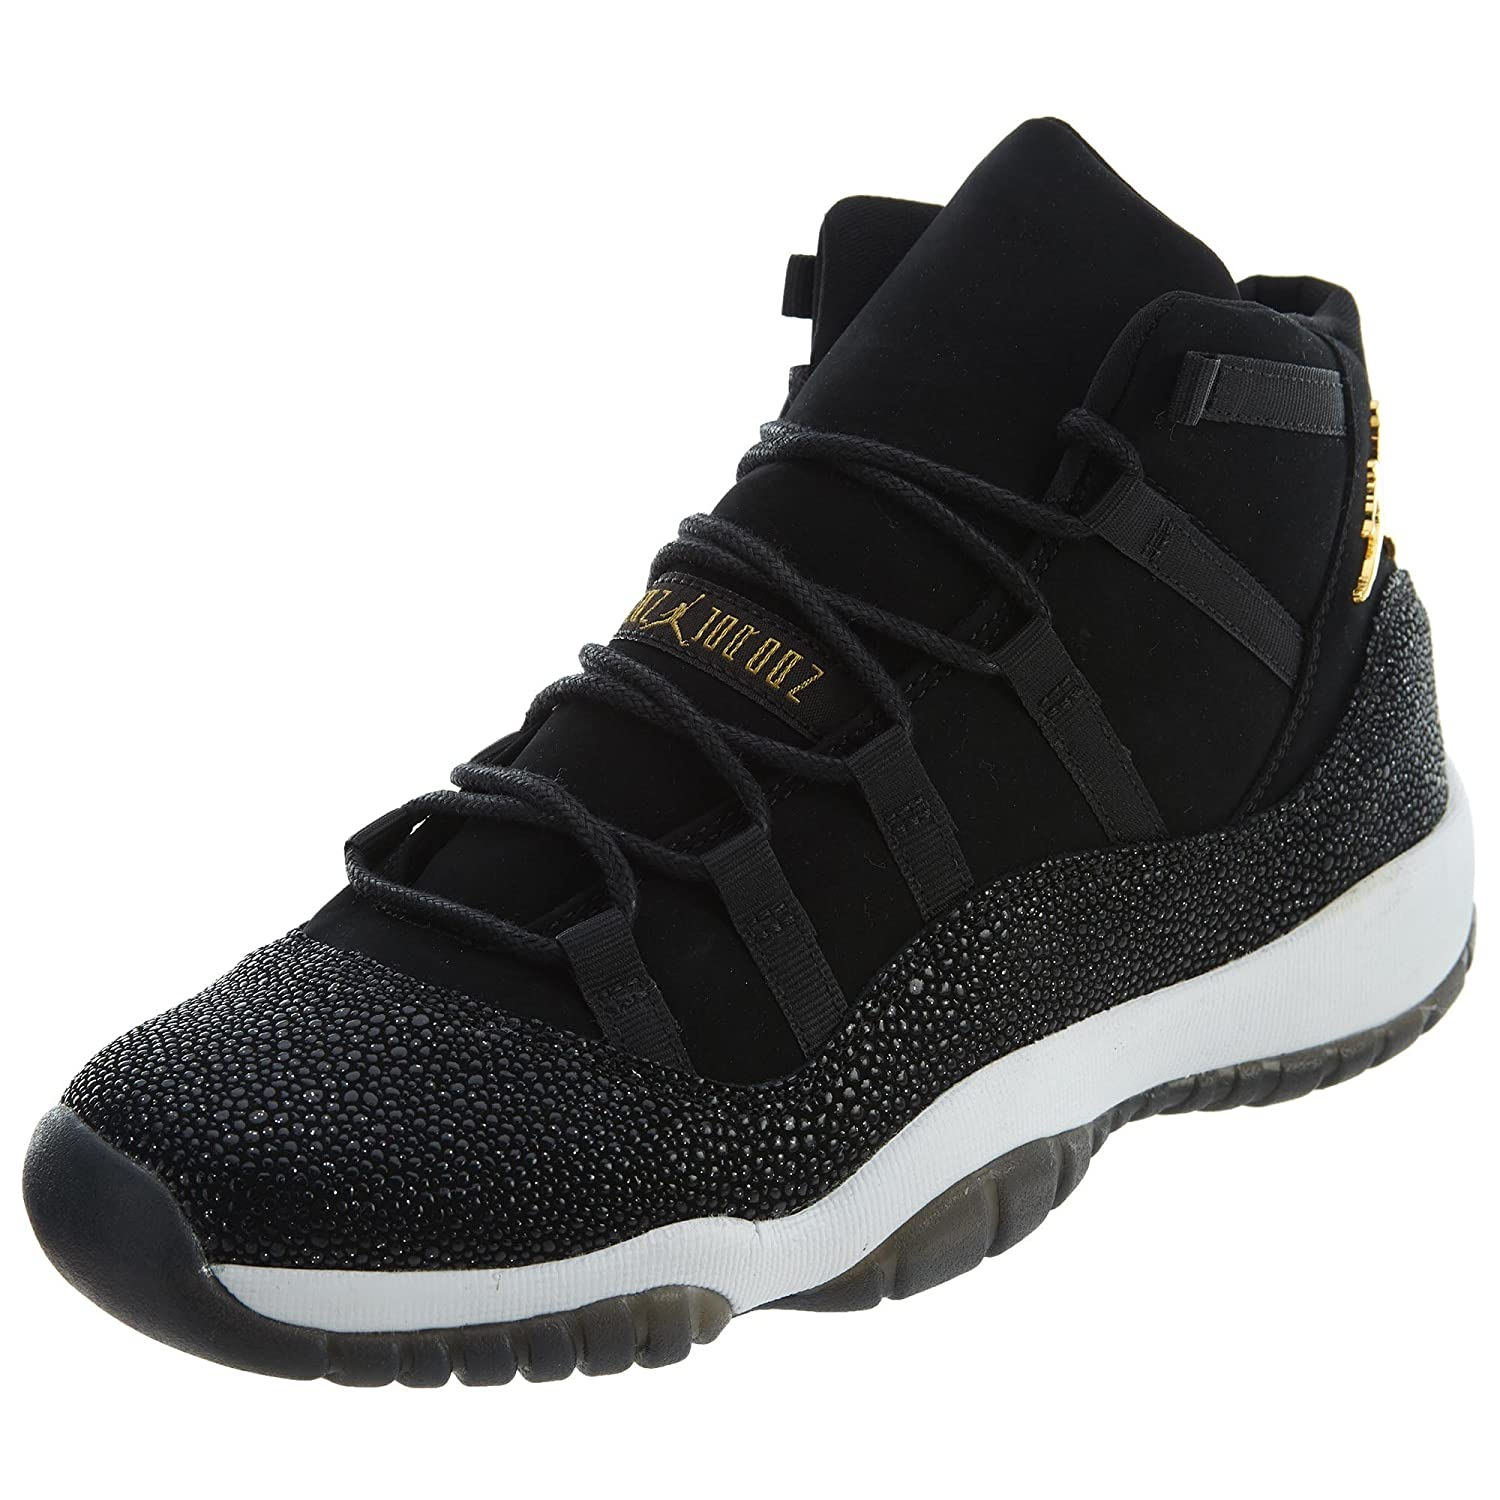 1f2fffde5b2 Amazon.com | Air Jordan 11 Retro Prem HC GG